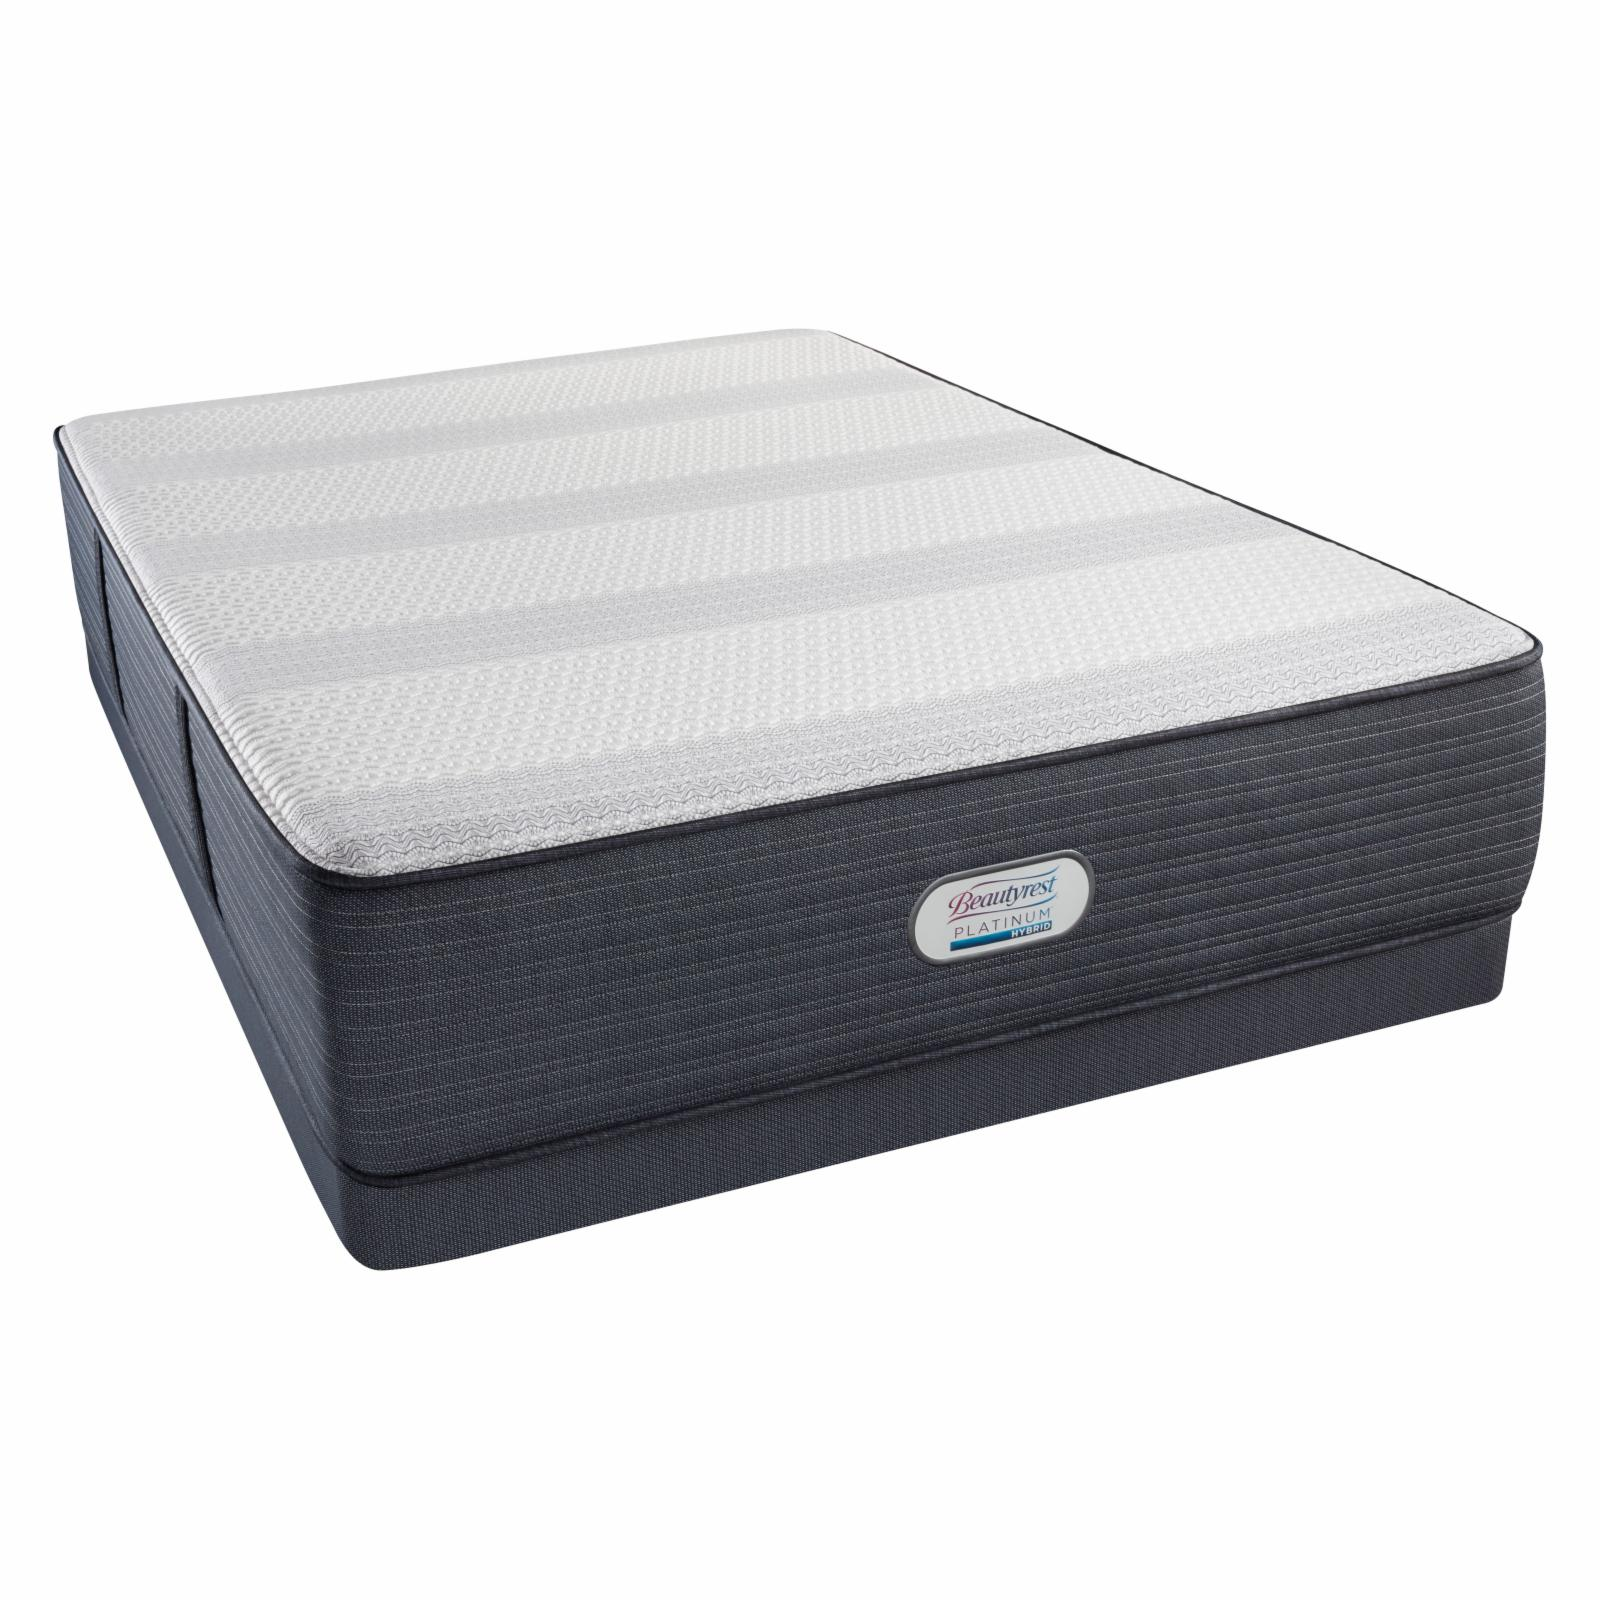 Beautyrest Platinum Hybrid Emerald Falls 14.5 in. Ultra Plush Mattress - 700800123-9870